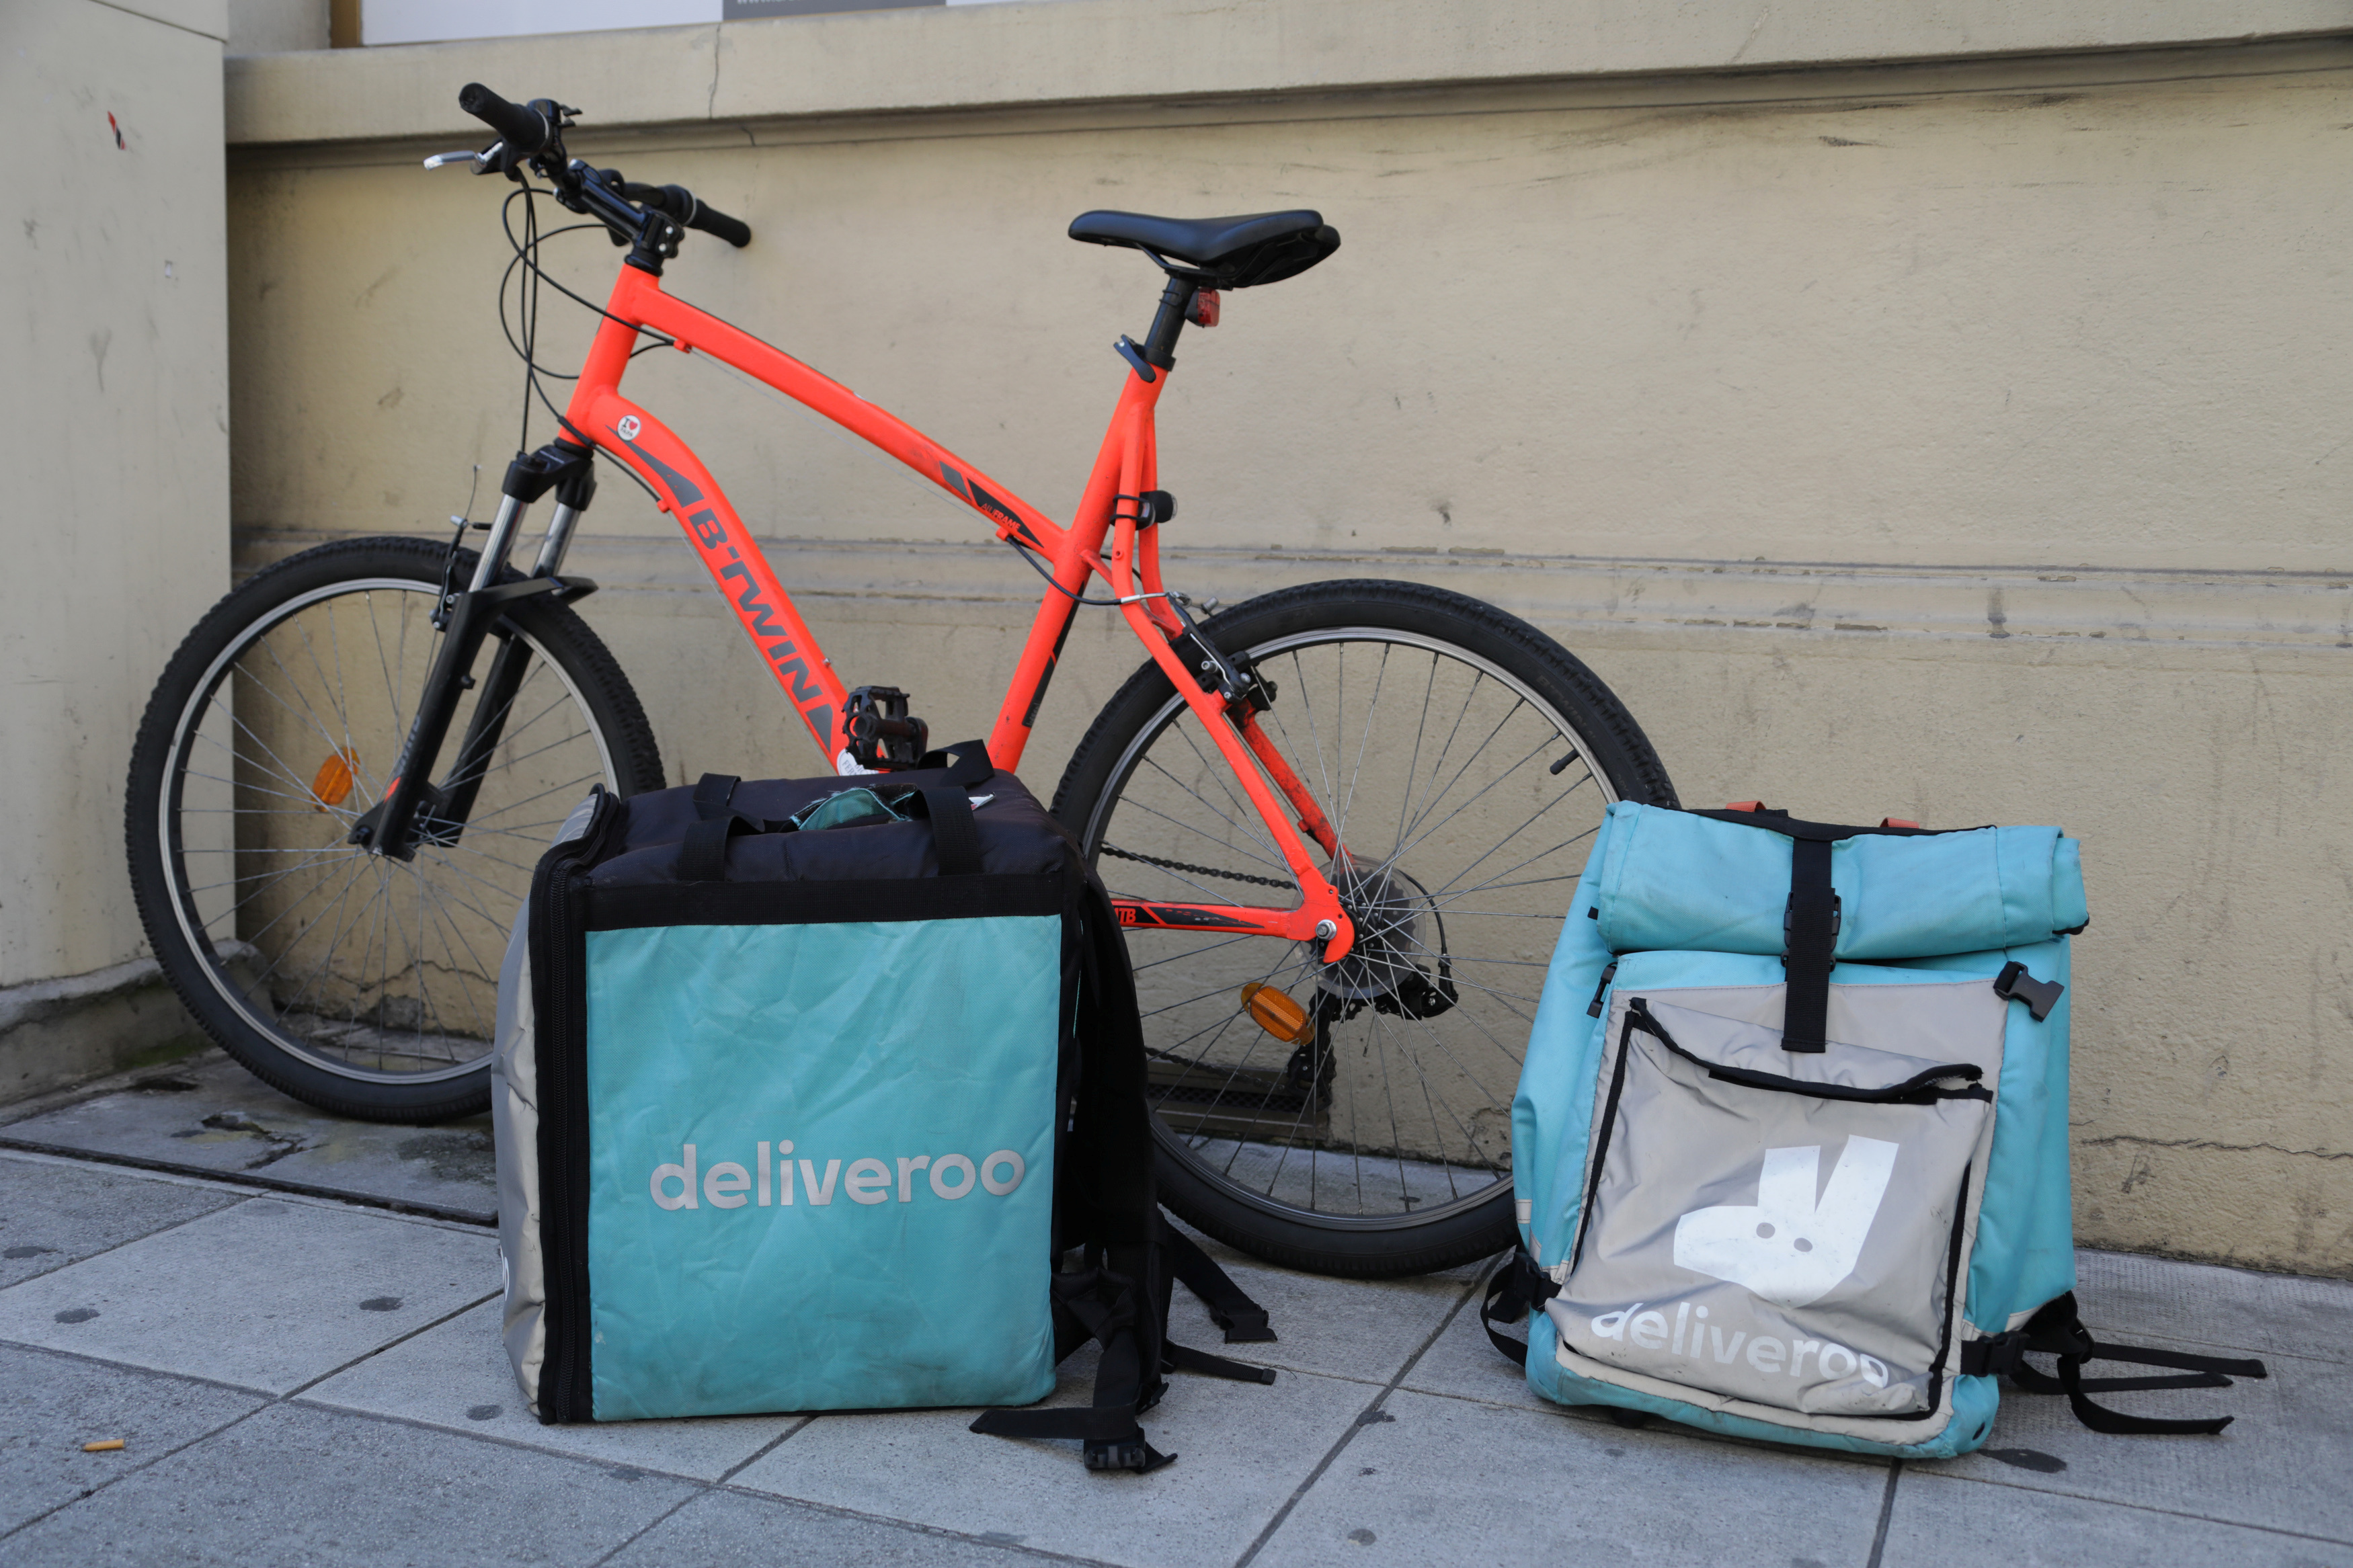 Deliveroo food delivery bags are seen in Nice, France, June 5, 2018.  REUTERS/Eric Gaillard/Files